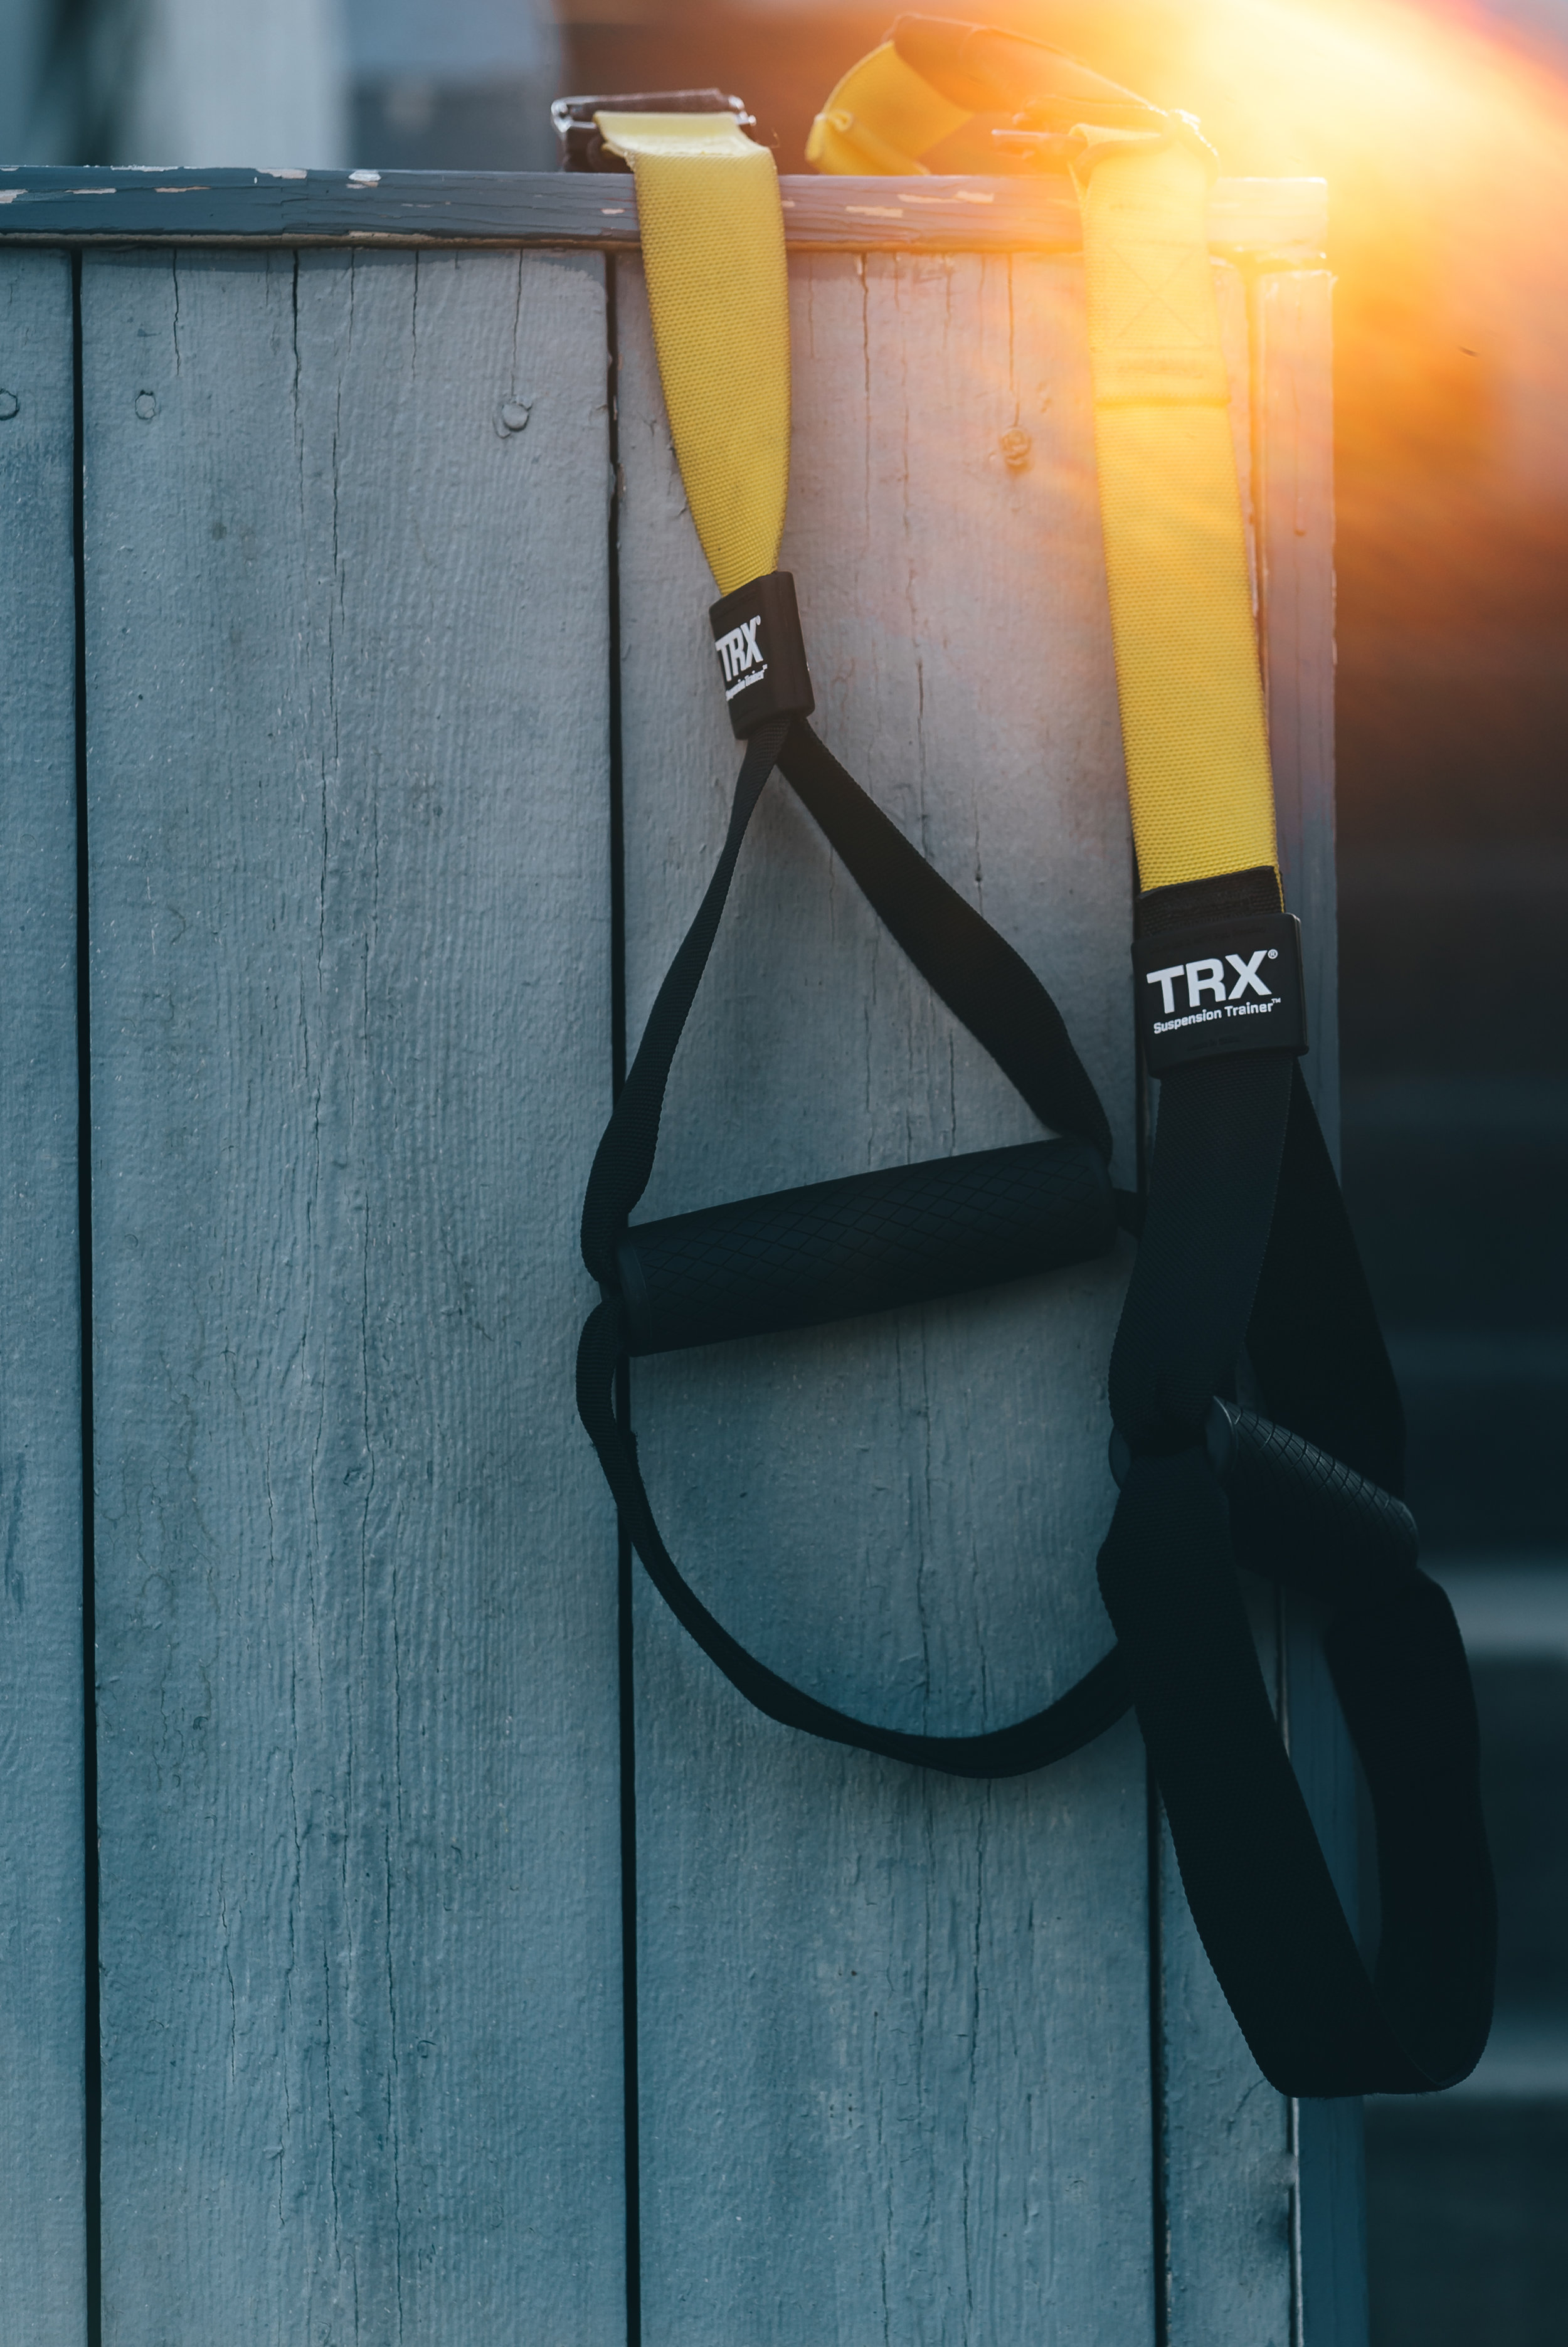 NEW TRX Training Classes - TRX training with mixed equipment:TRX is a total-body workout that allows you to effectivelytorch your whole body while building strength, balance,flexibility and core stability simultaneously using your bodyweight.